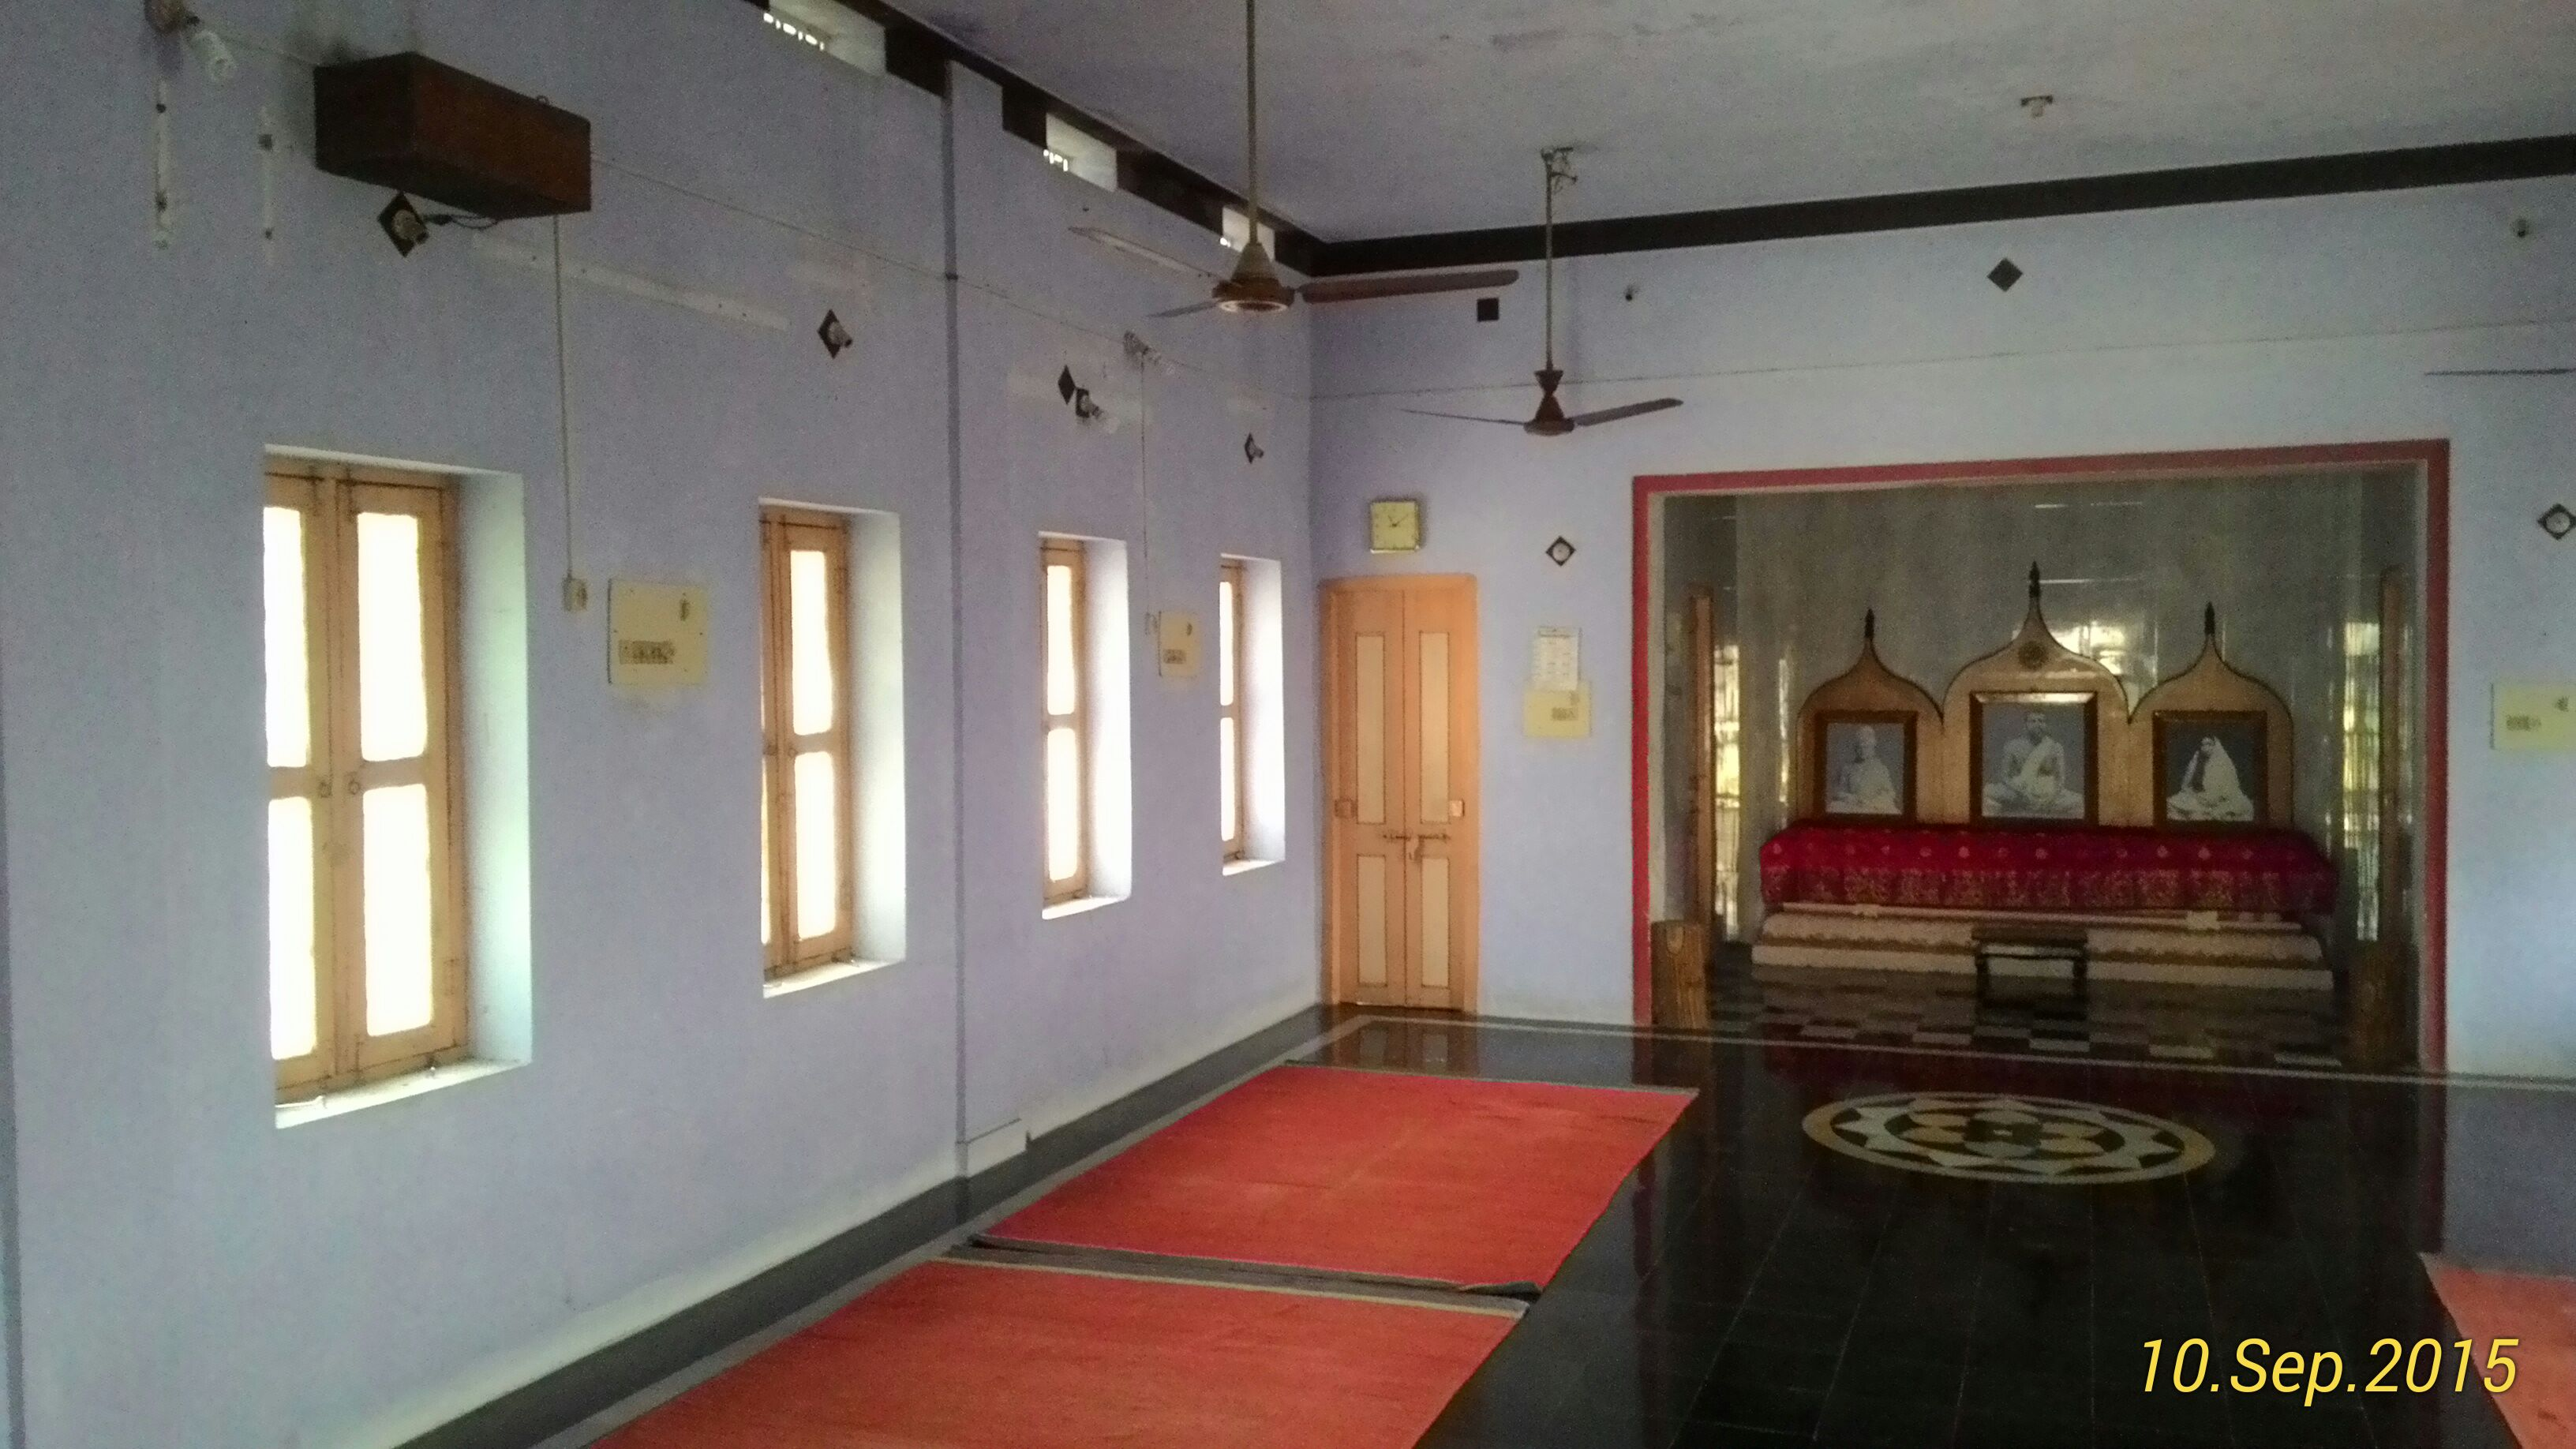 View inside the dhyana mandir